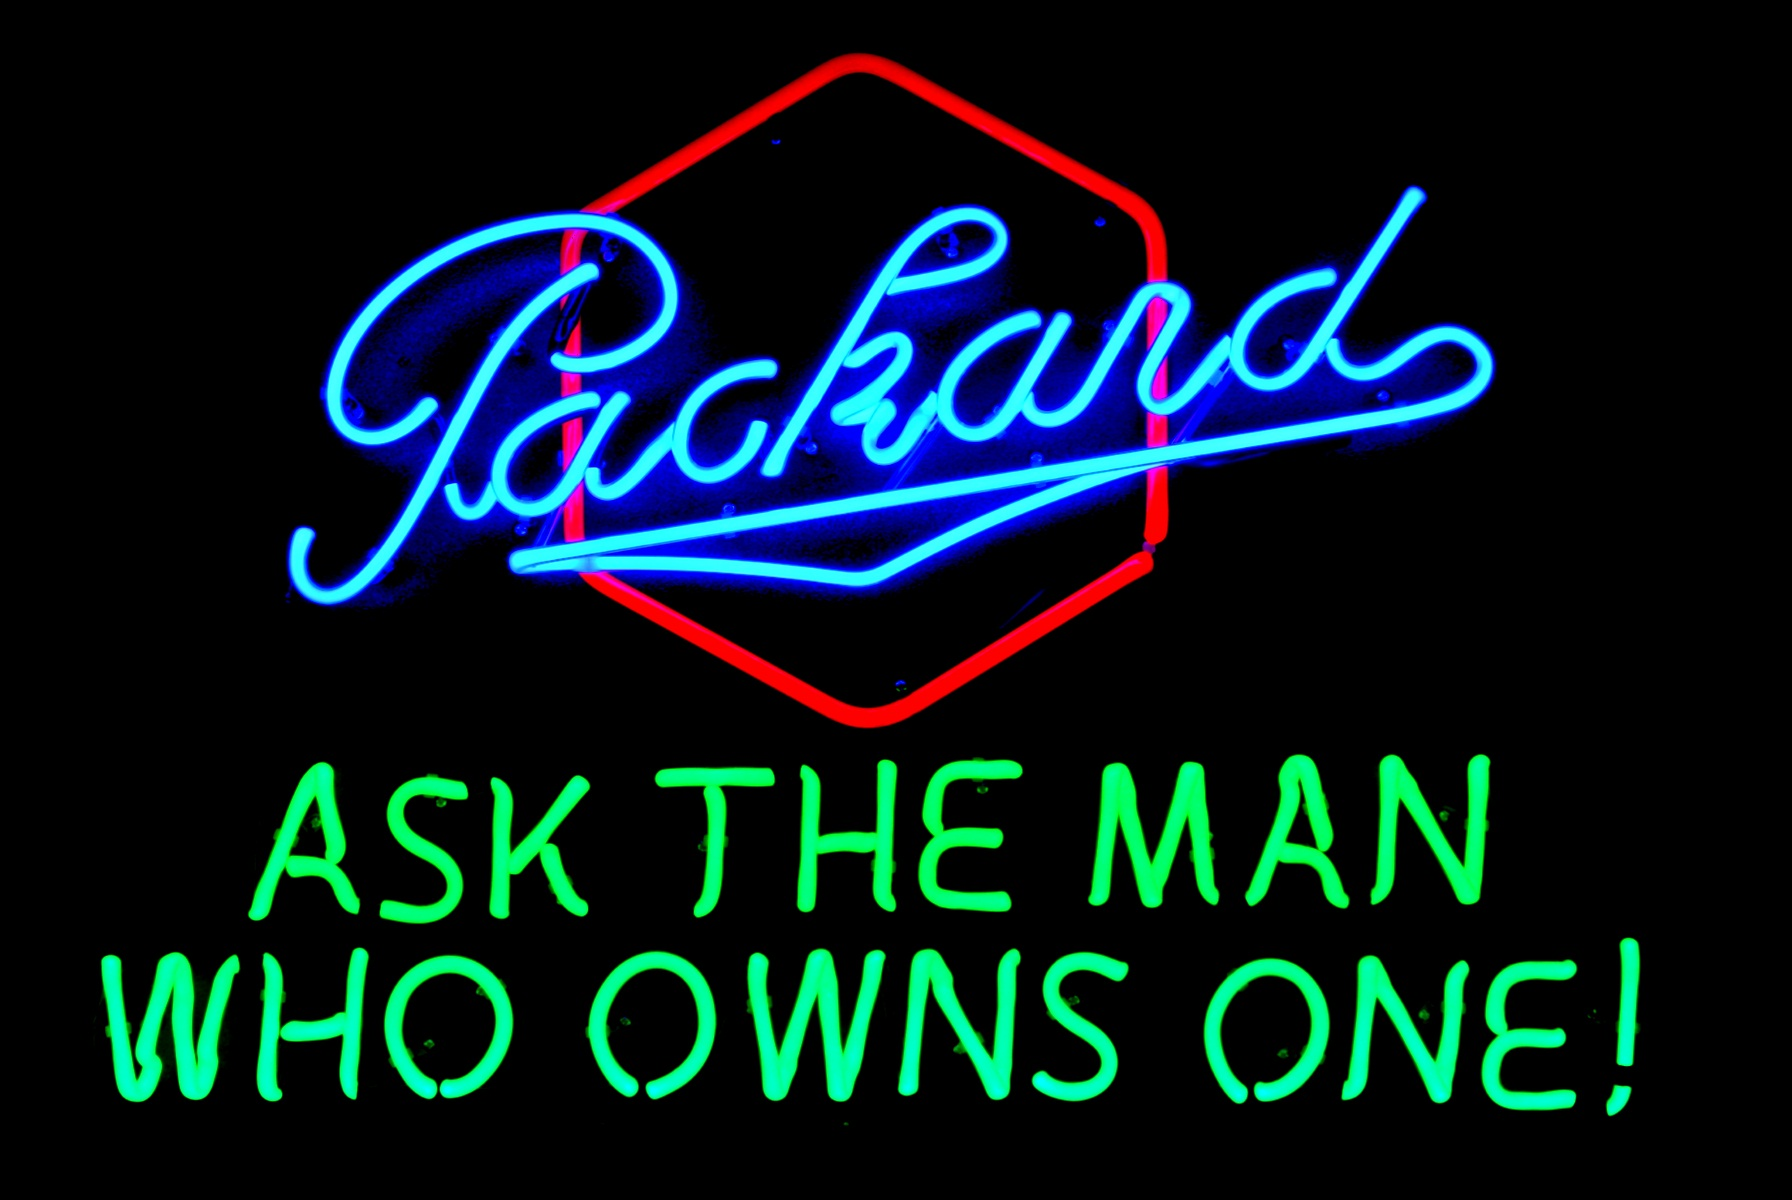 Packard - Ask The Man Who Owns One! Dealership Neon Sign by John Barton - BartonNeonMagic.com